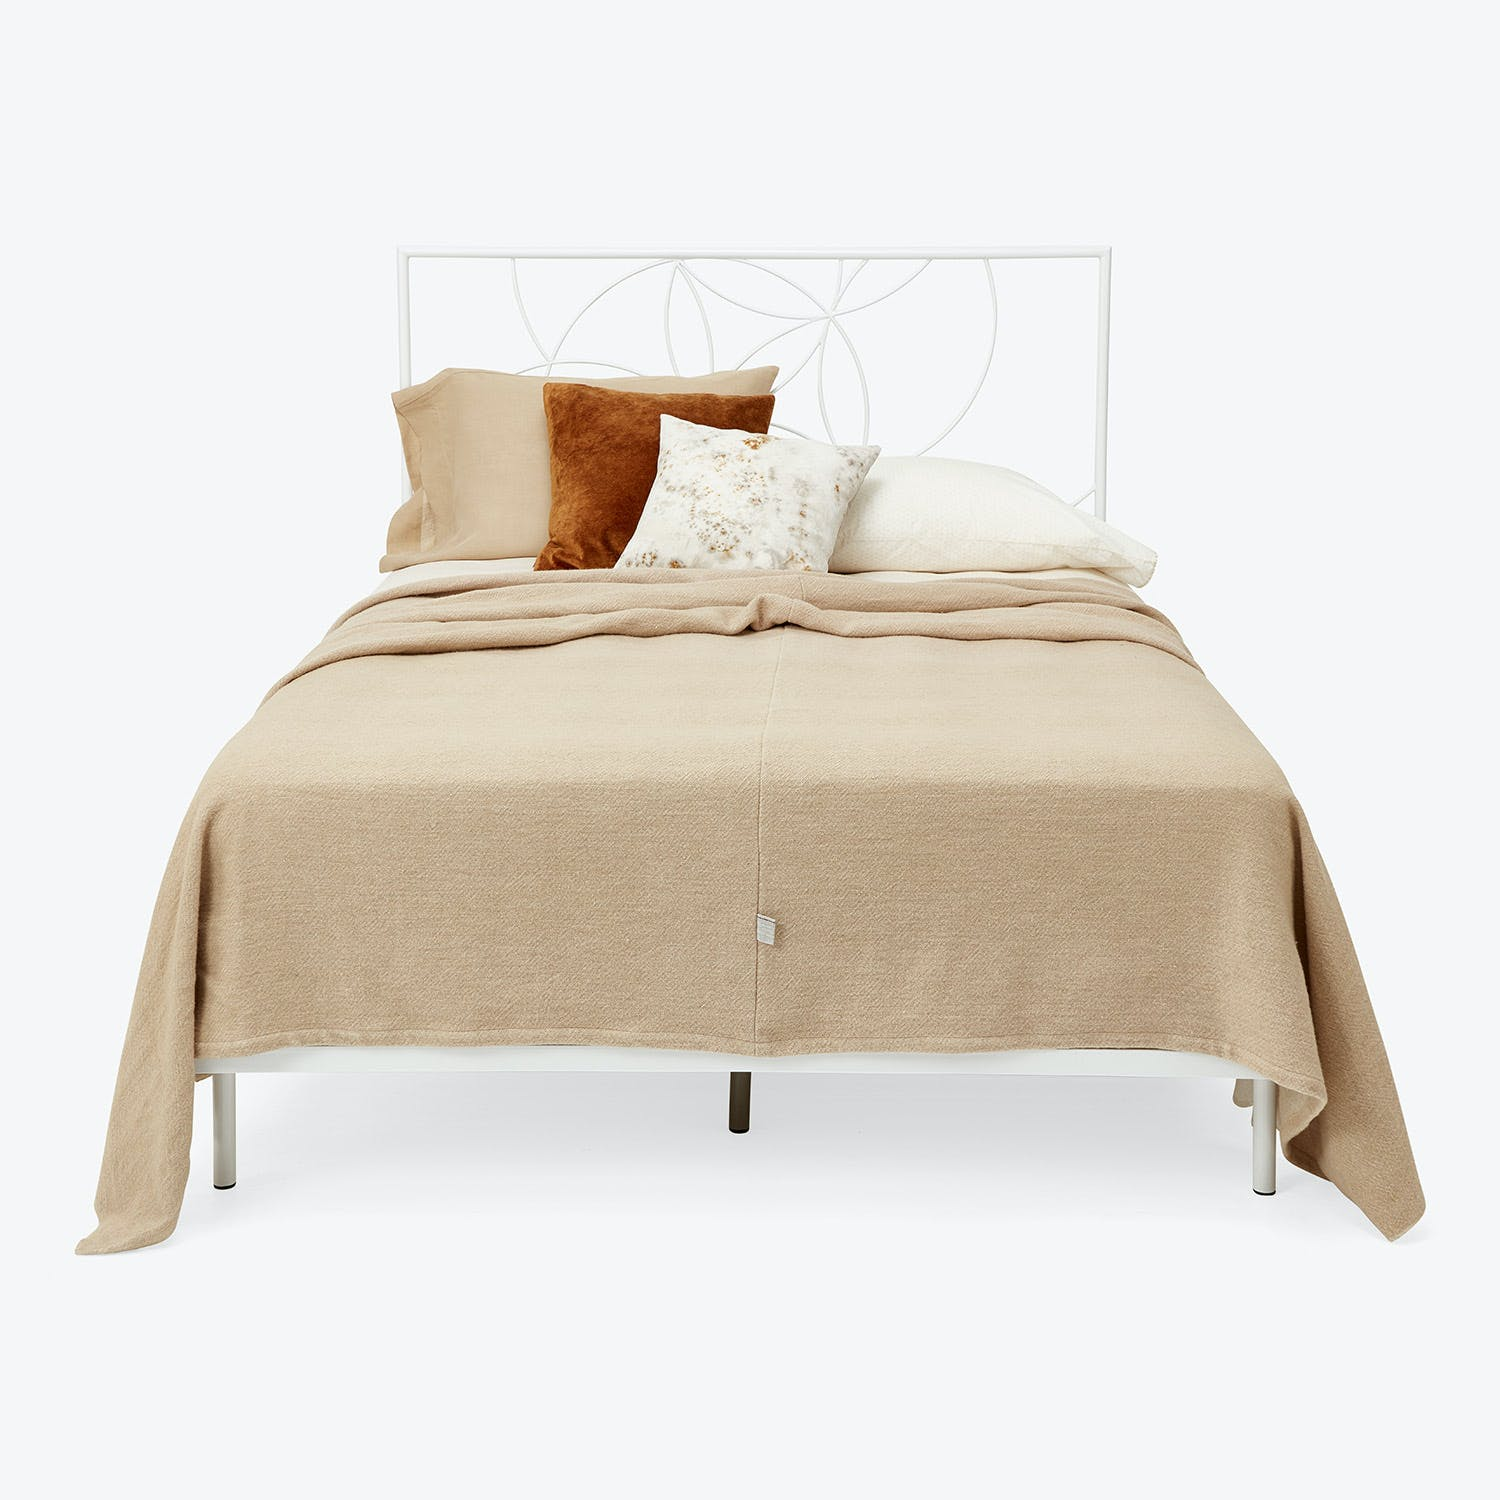 Product Image - Solido Bed White